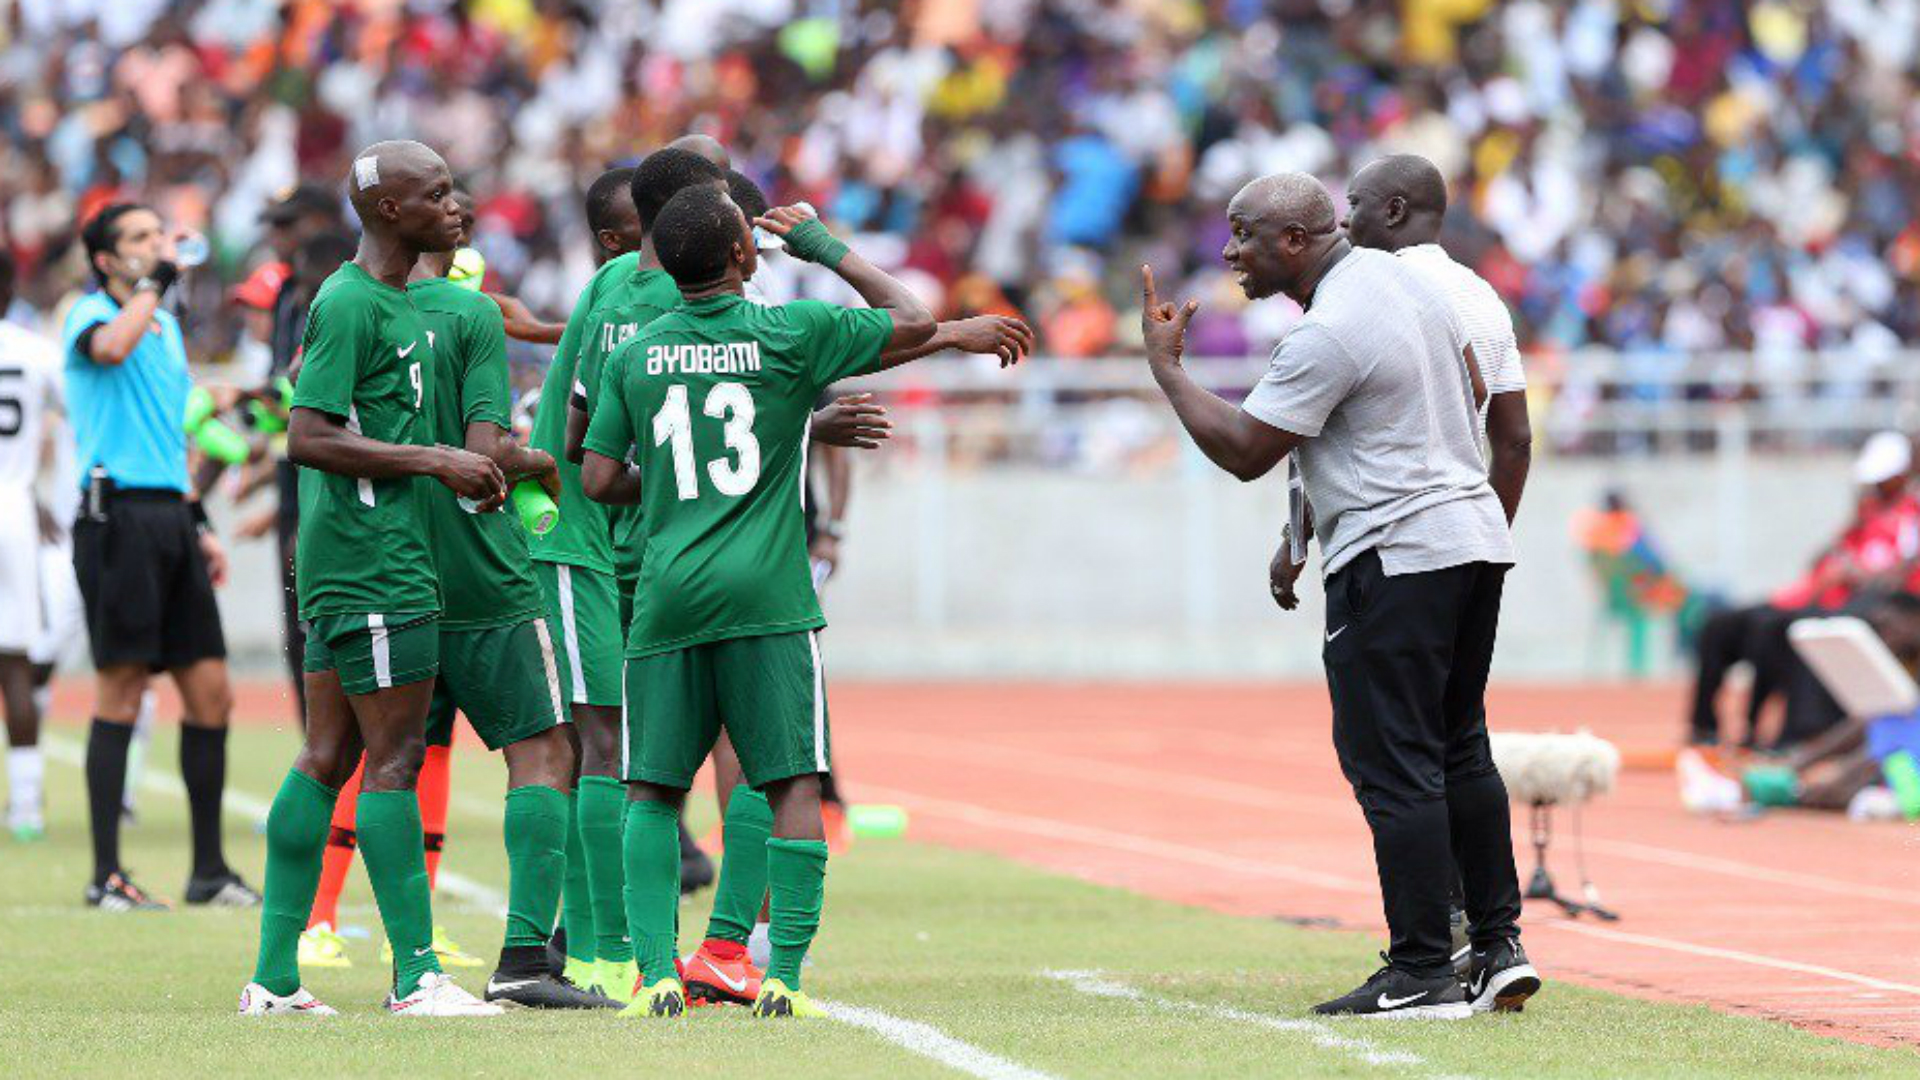 U-17 AFCON: Nigeria's Golden Eaglets to face Guinea in semifinal